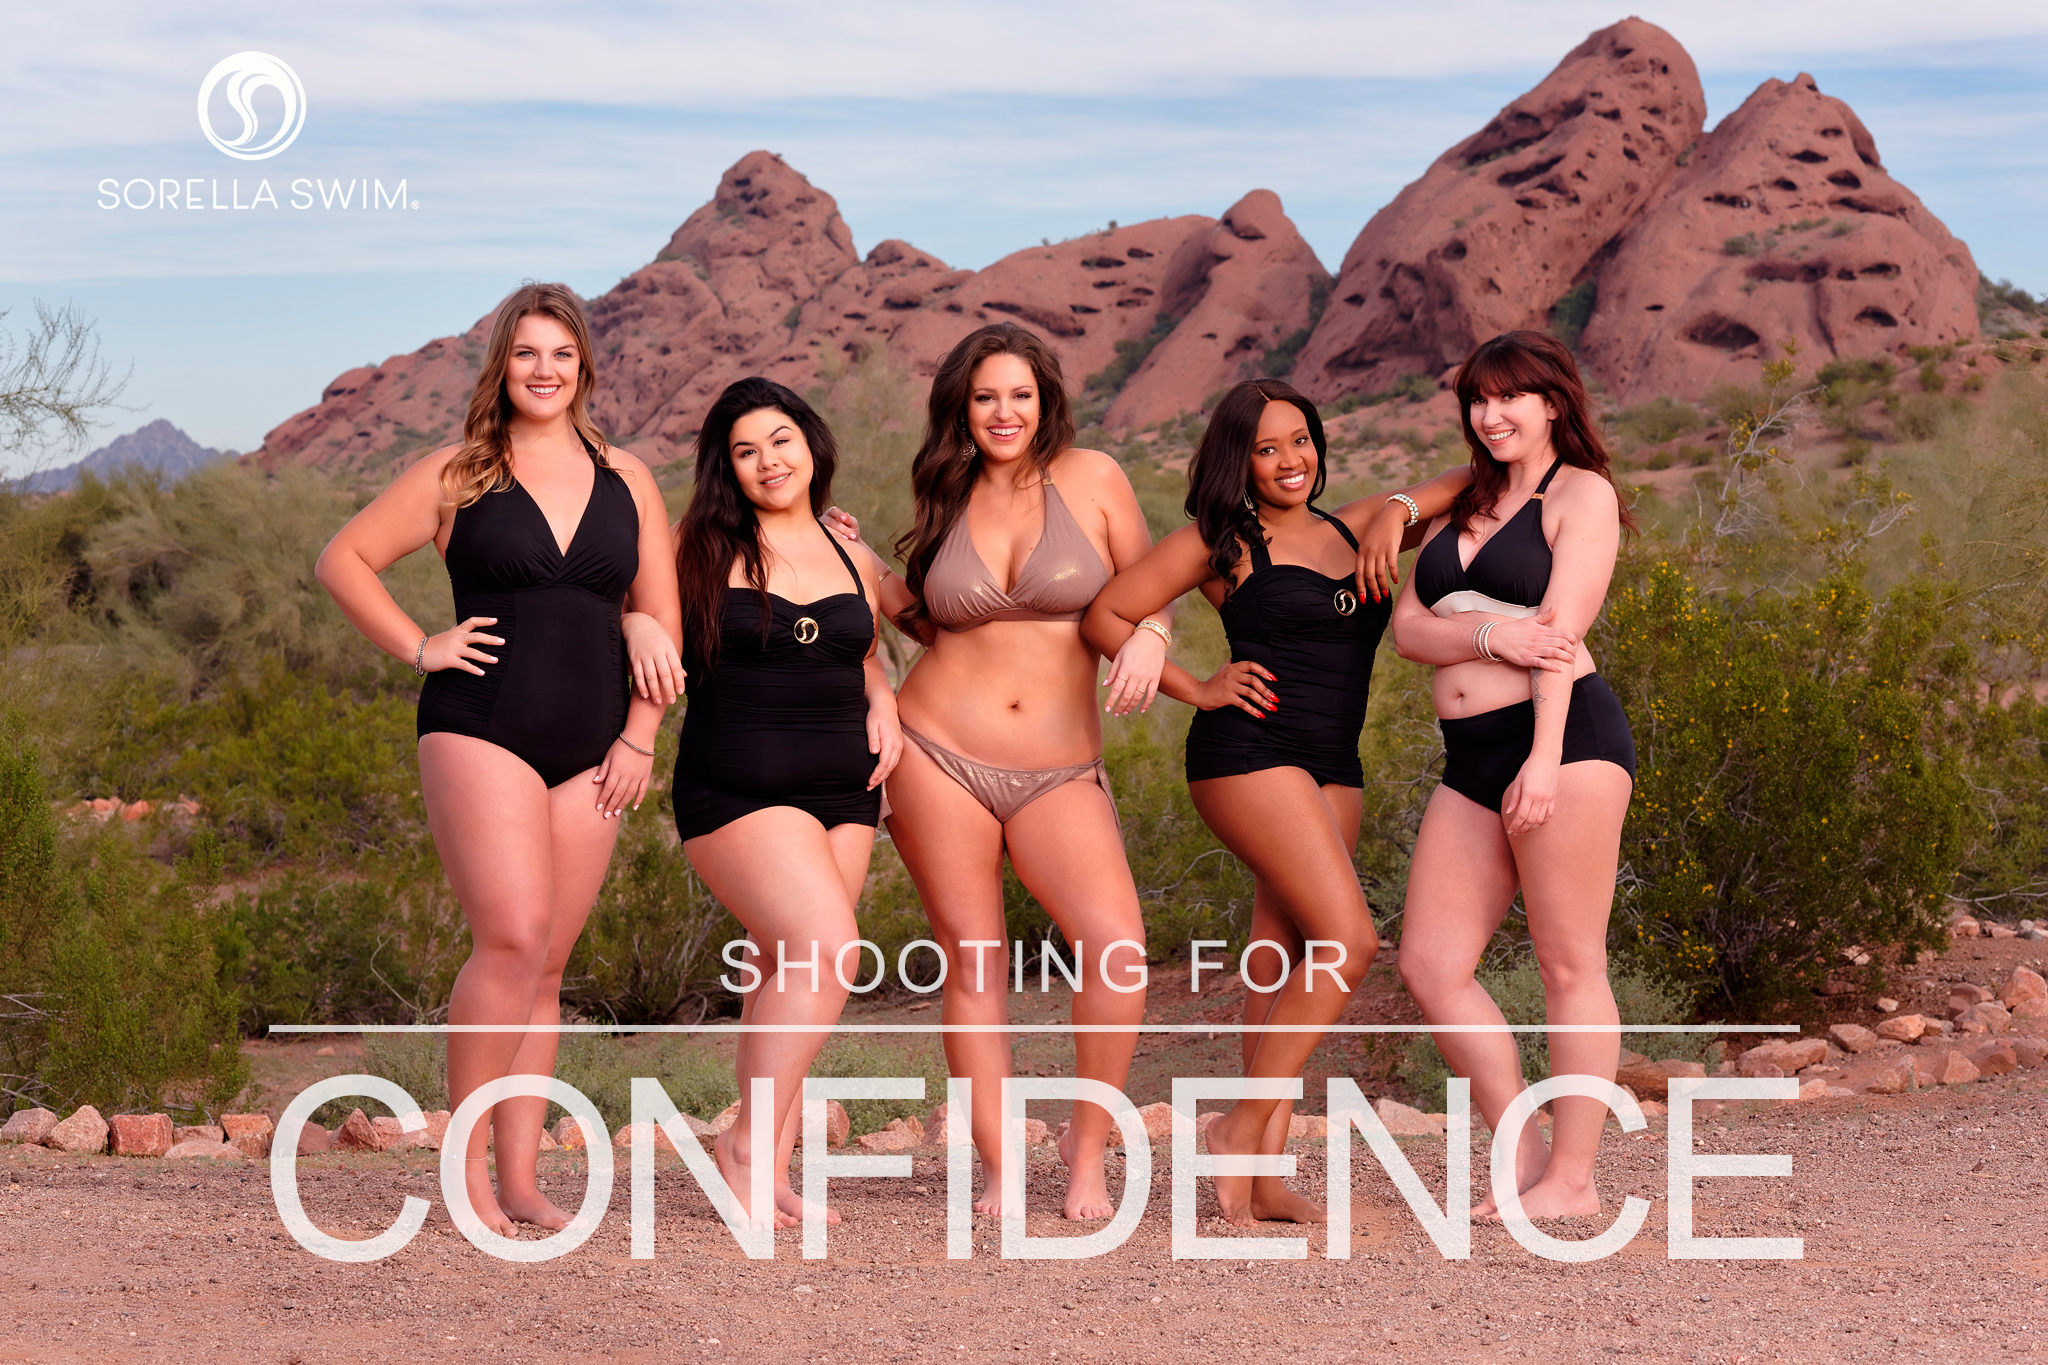 Shooting for Confidence